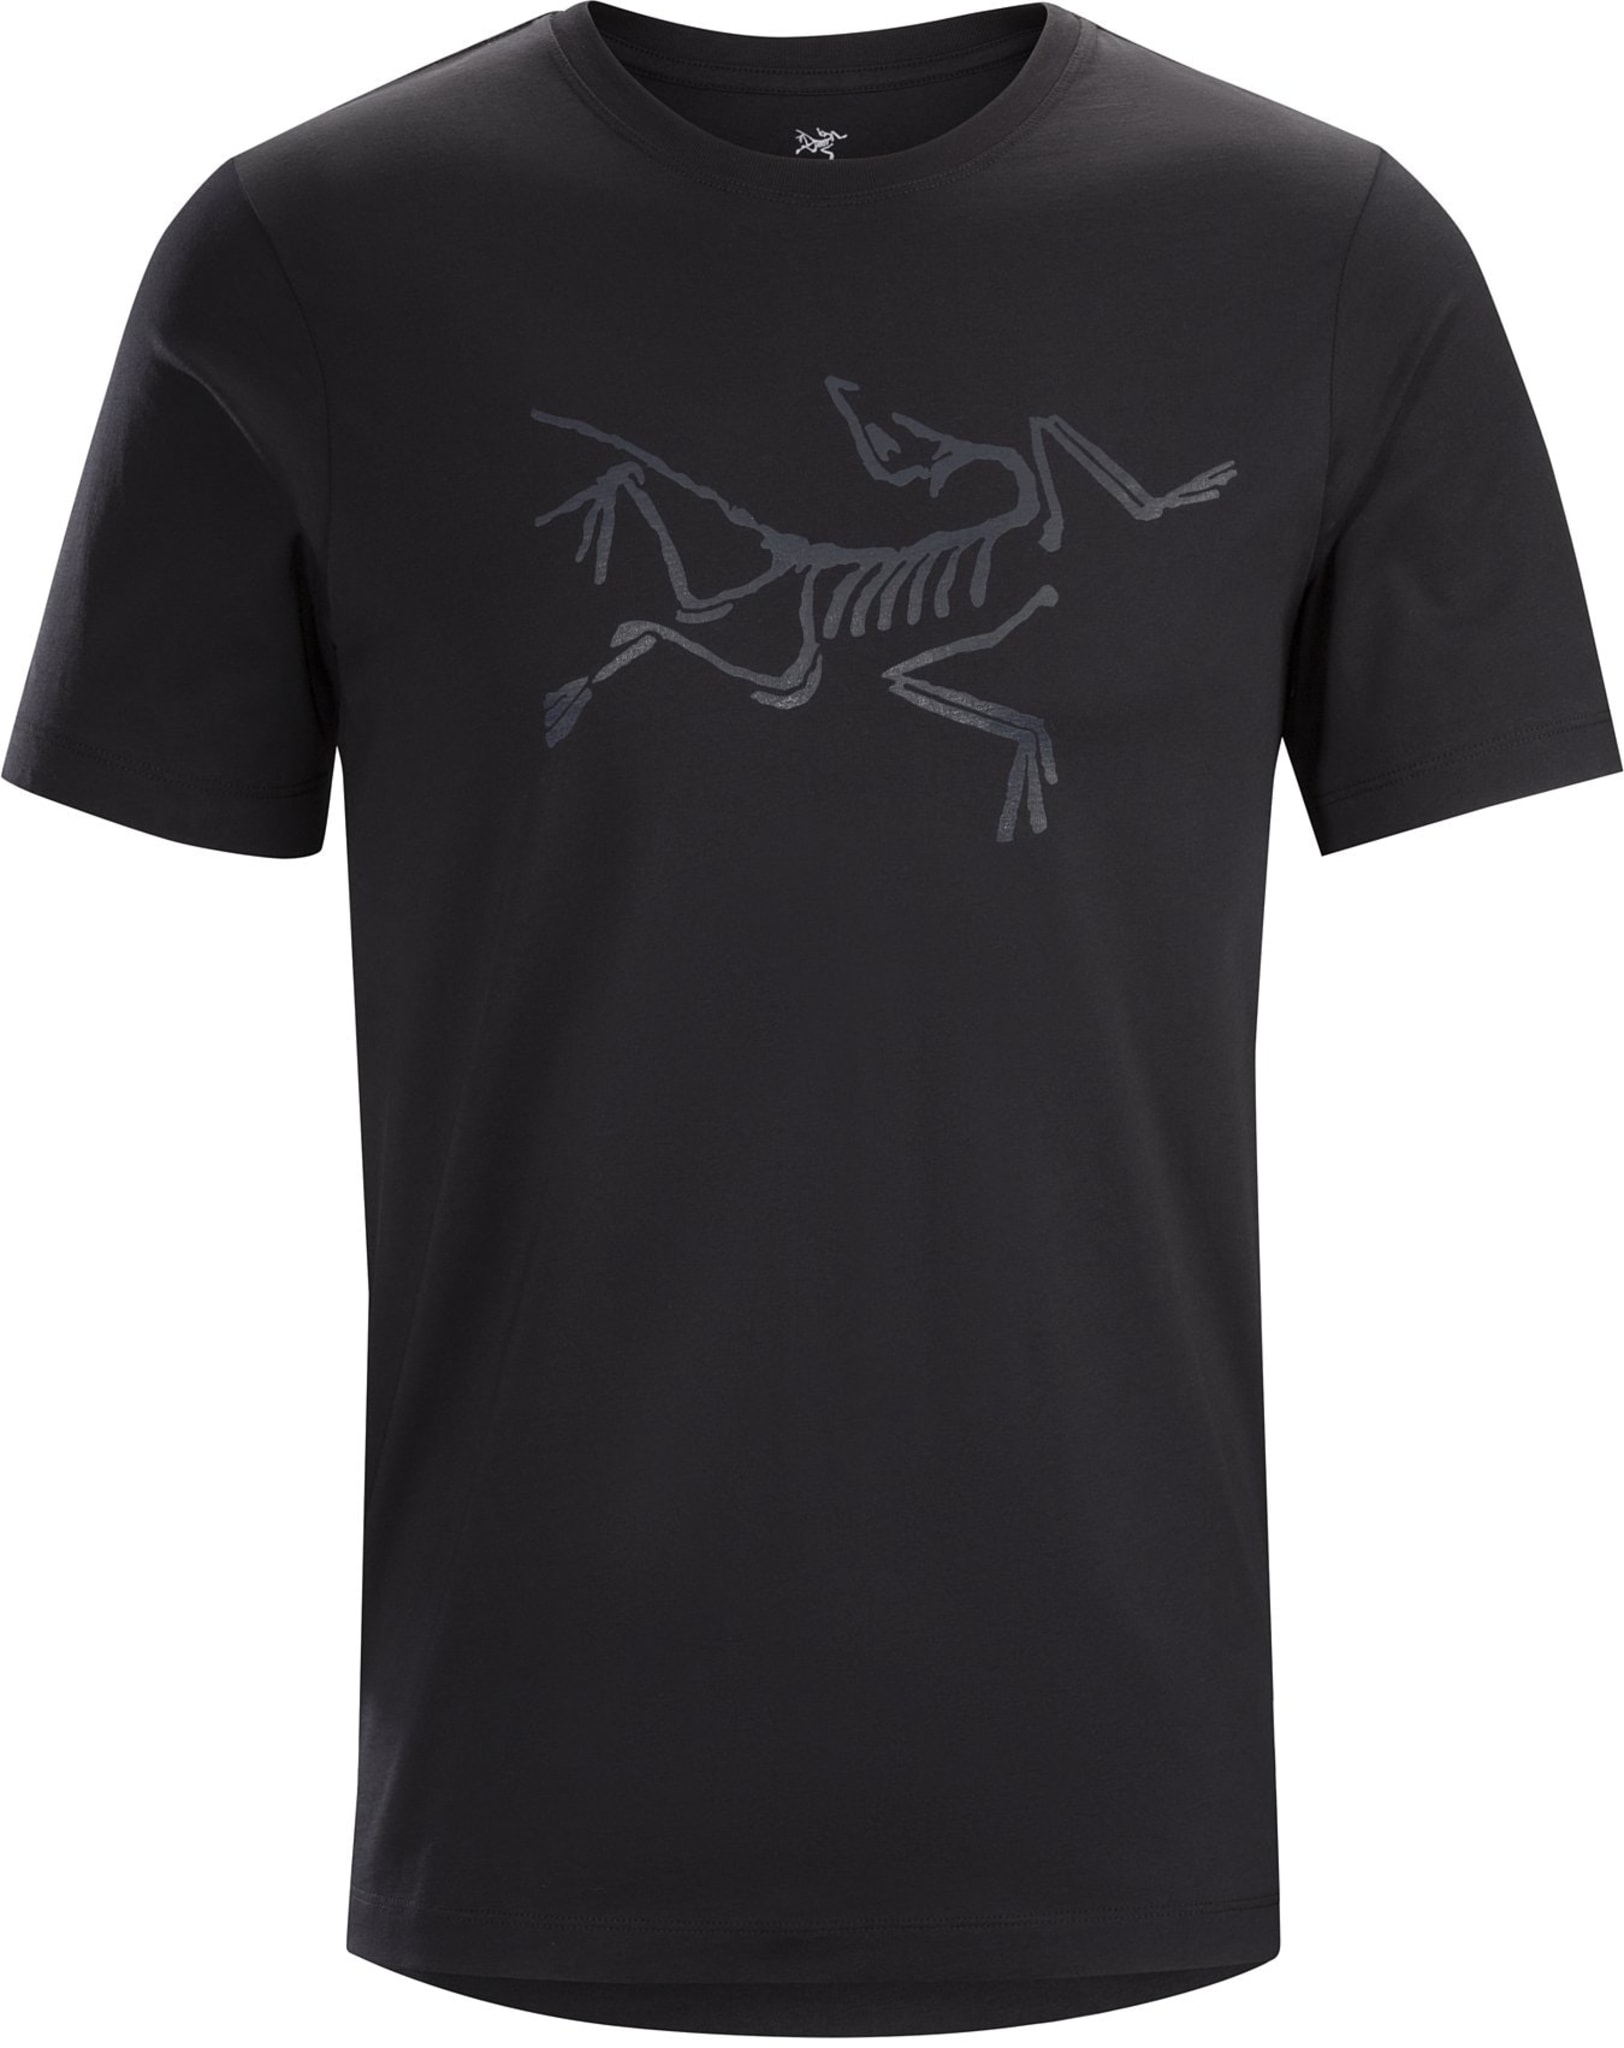 Archaeopteryx T-Shirt SS